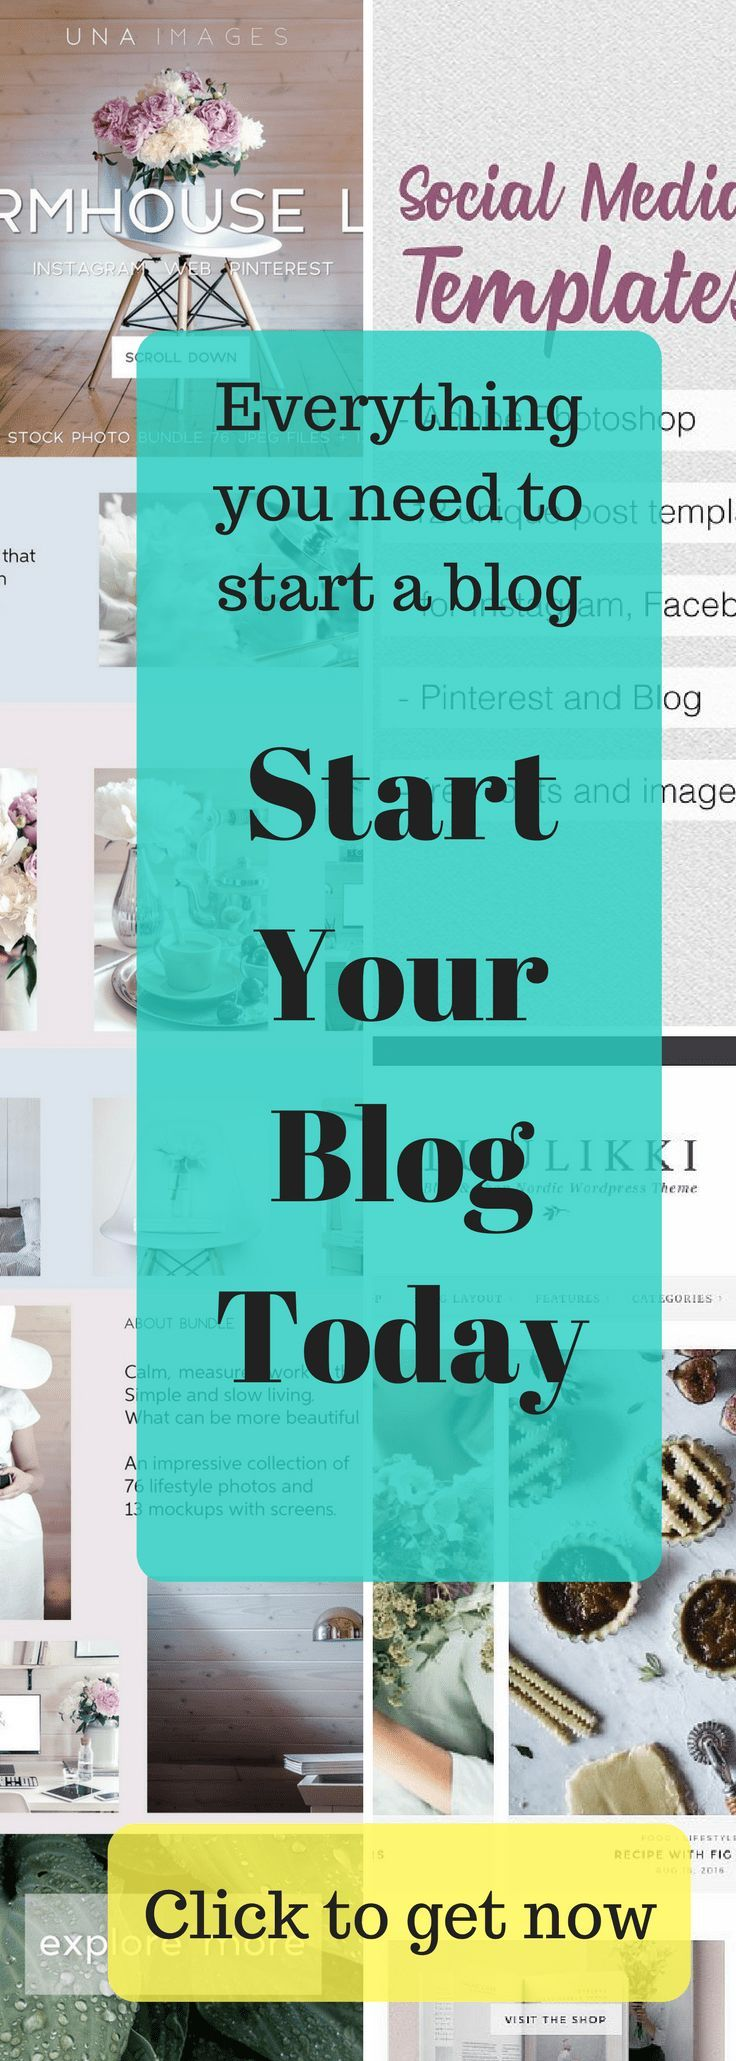 Have you ever wanted to start a blog but have no clue were to start. Click to get all the blogging resources, blogging tools, social media templates, fonts, blog theme, everything you need to start a blog. #blogging, #newblogger, #blogresources